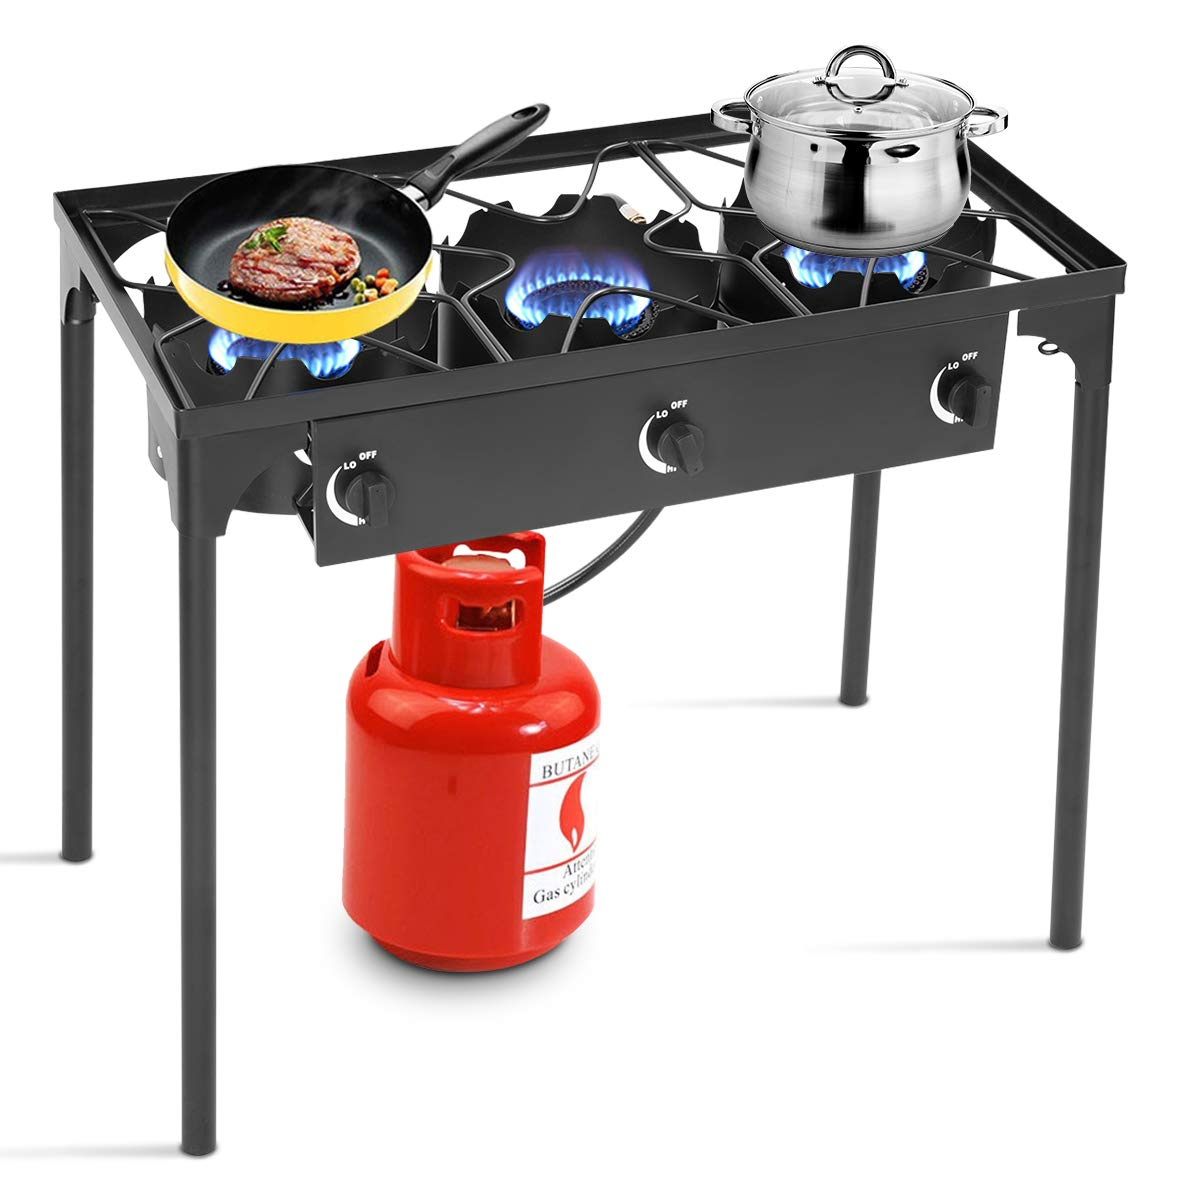 Goplus Outdoor Stove Portable Propane Gas Cooker Iron Cast Patio Burner w/Detachable Legs for Camp Cooking (3-Burner 225,000-BTU) by Goplus